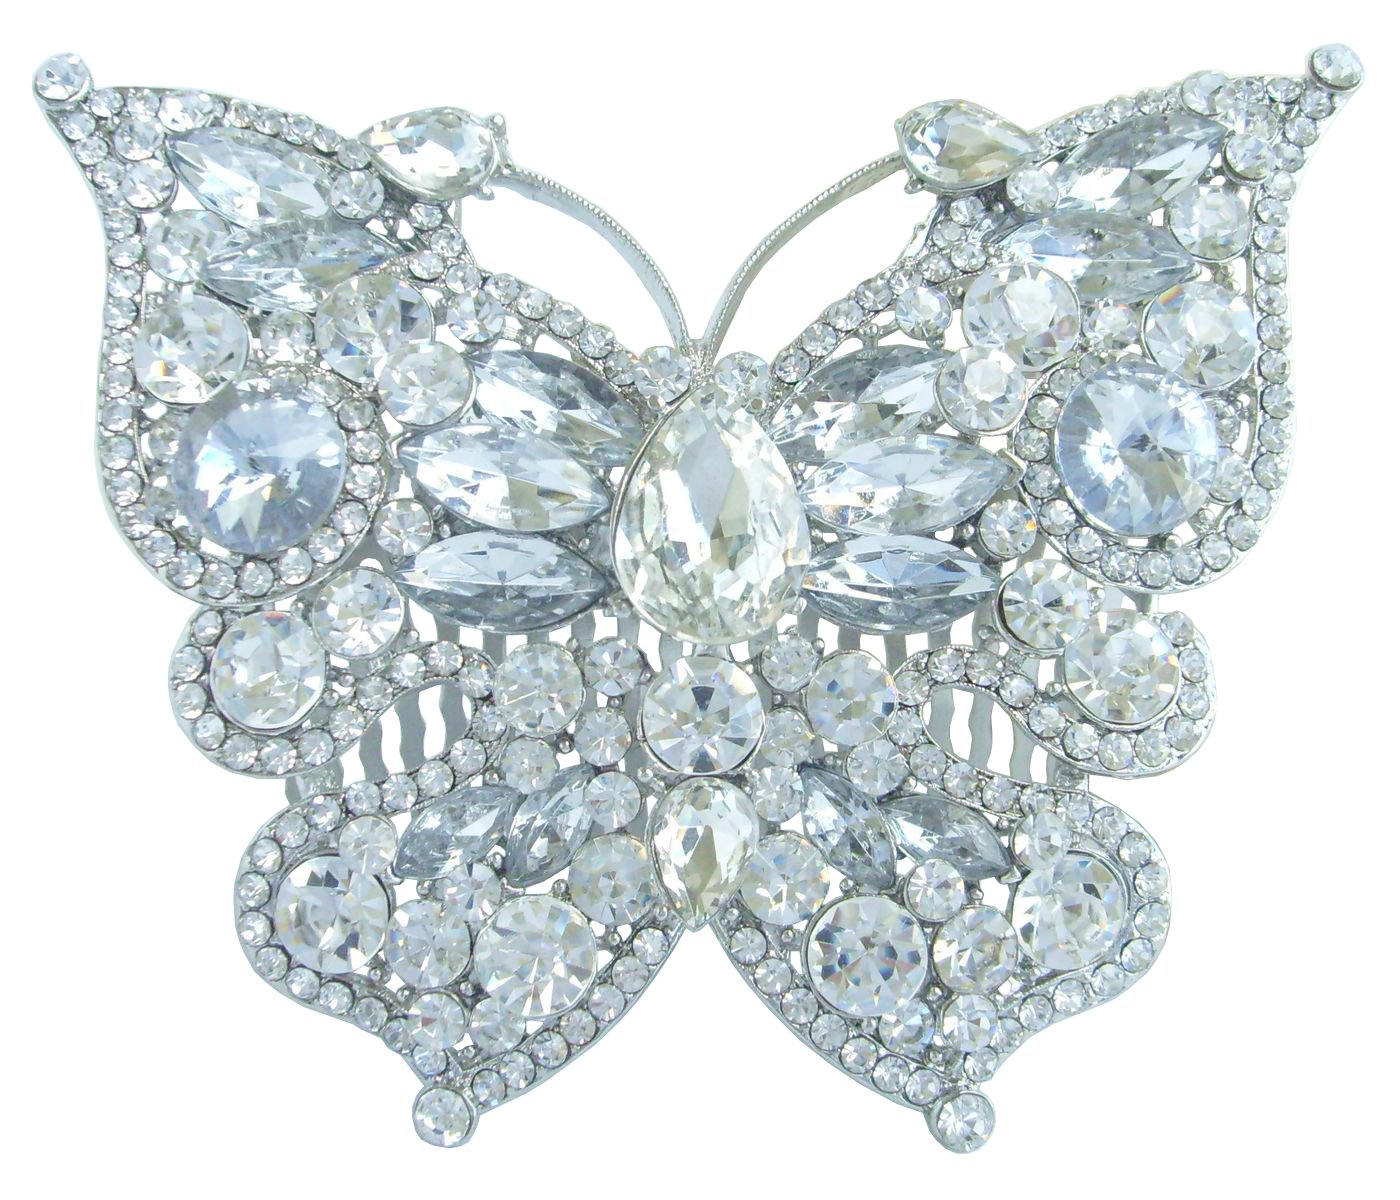 Sindary 3.94'' Silver Tone Butterfly Hair Comb Clear Rhinestone Crystal Wedding Headpiece HZ4919